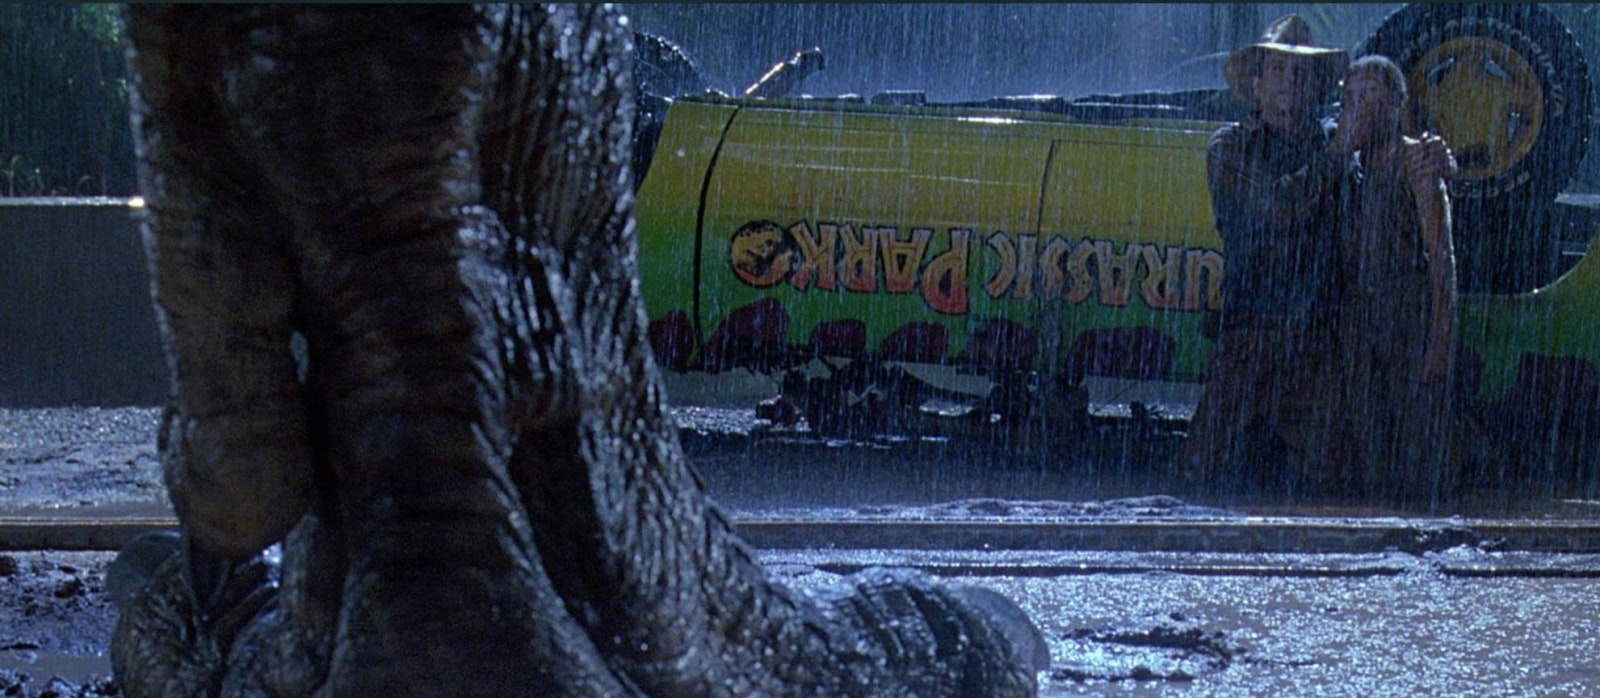 Here's how you can see Jurassic Park in Concert